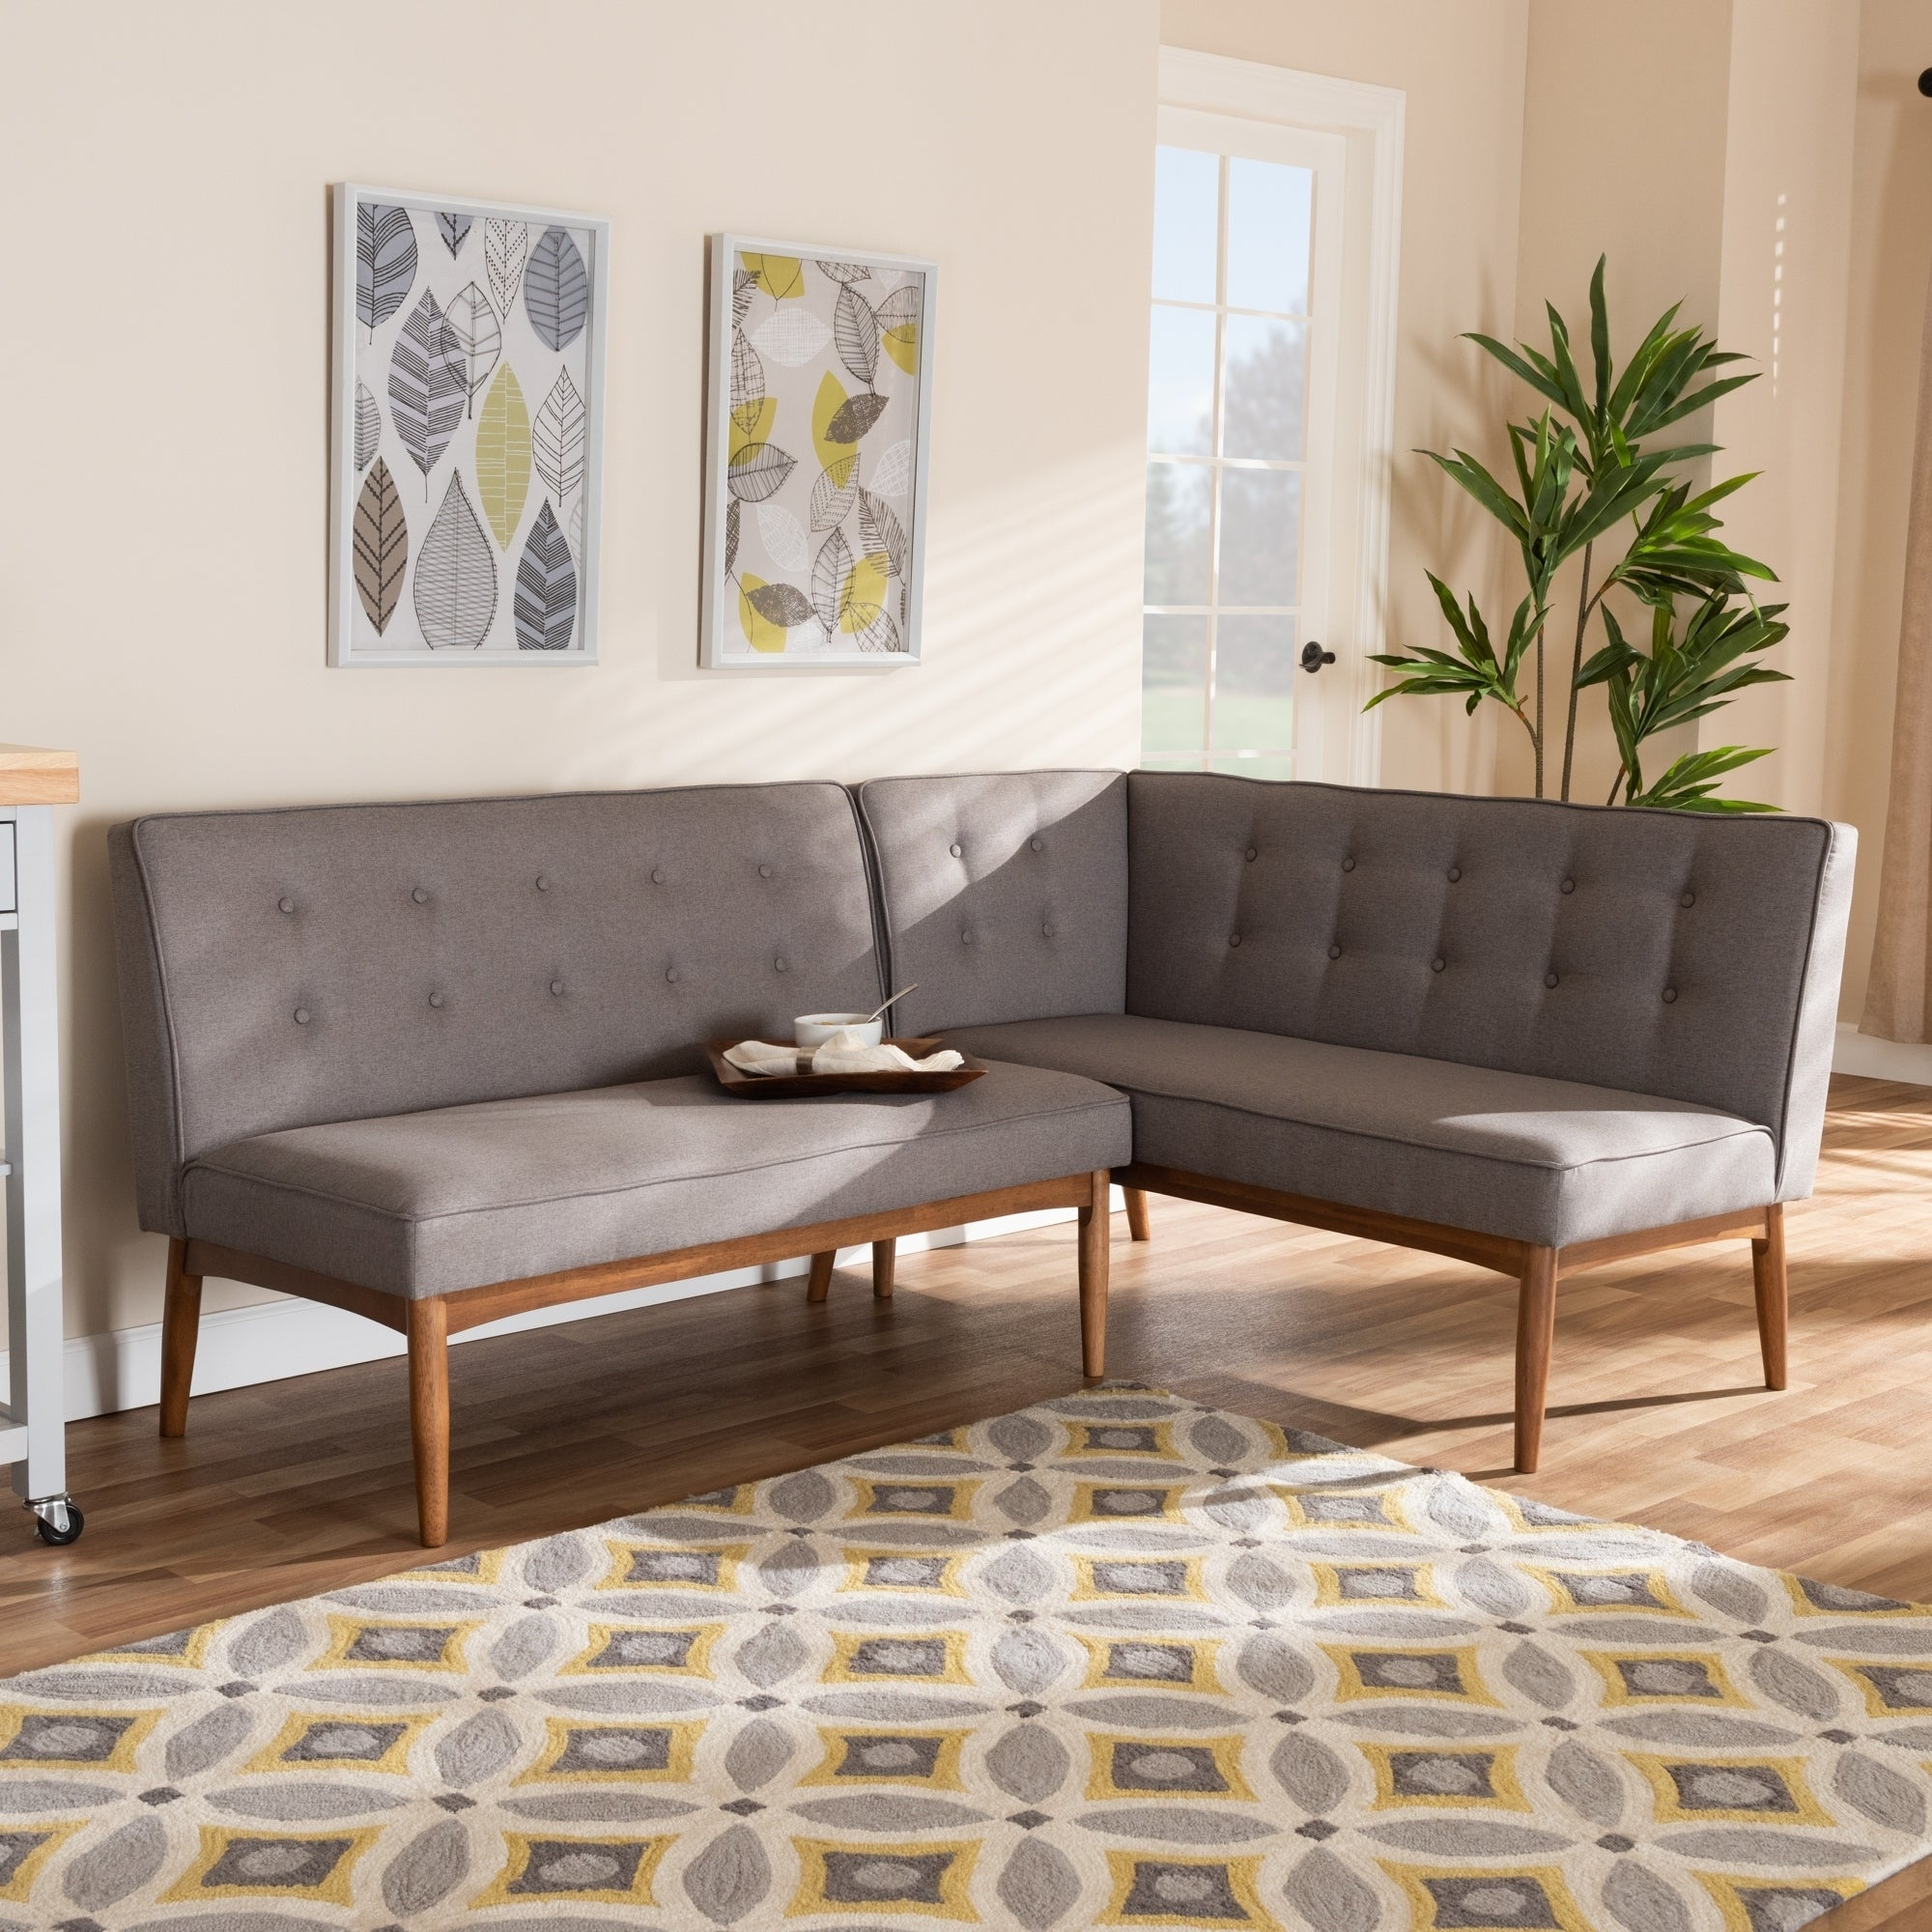 2 Piece Dining Corner Sofa Bench